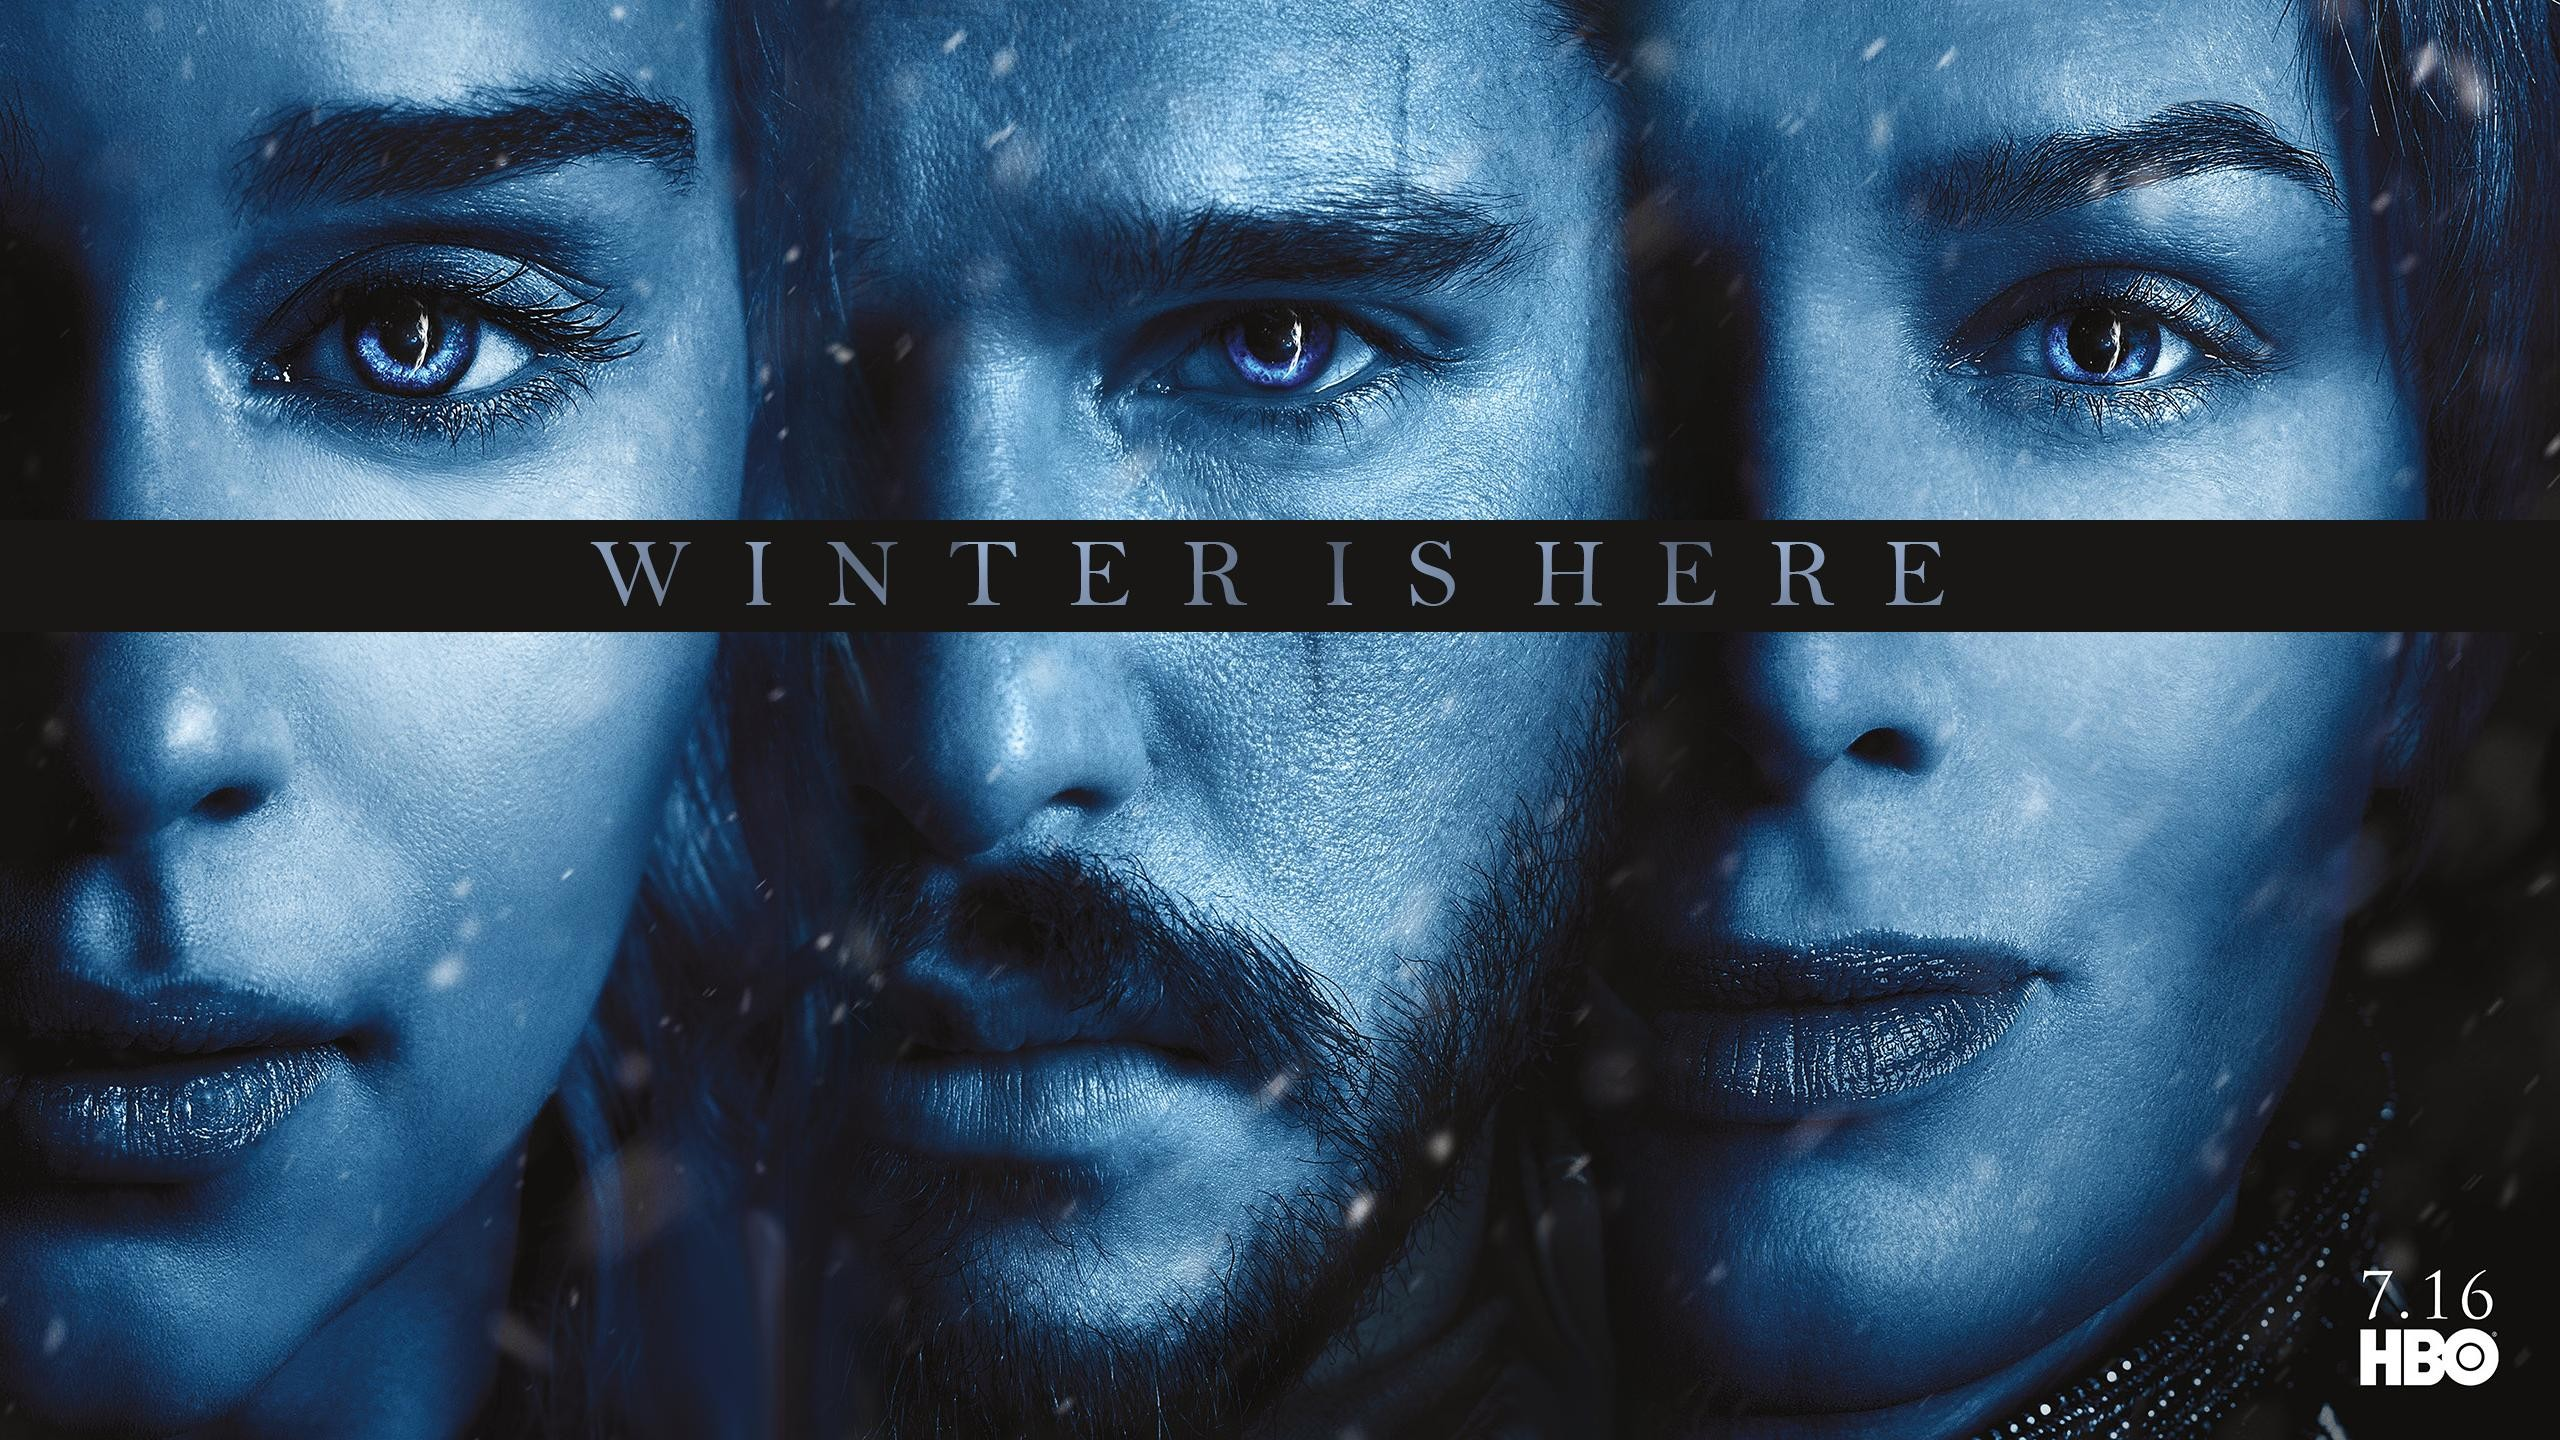 Limited[S7] Game Of thrones Season 7 Posters Wallpaper 2560 x 1440 (1080p  in comments) …